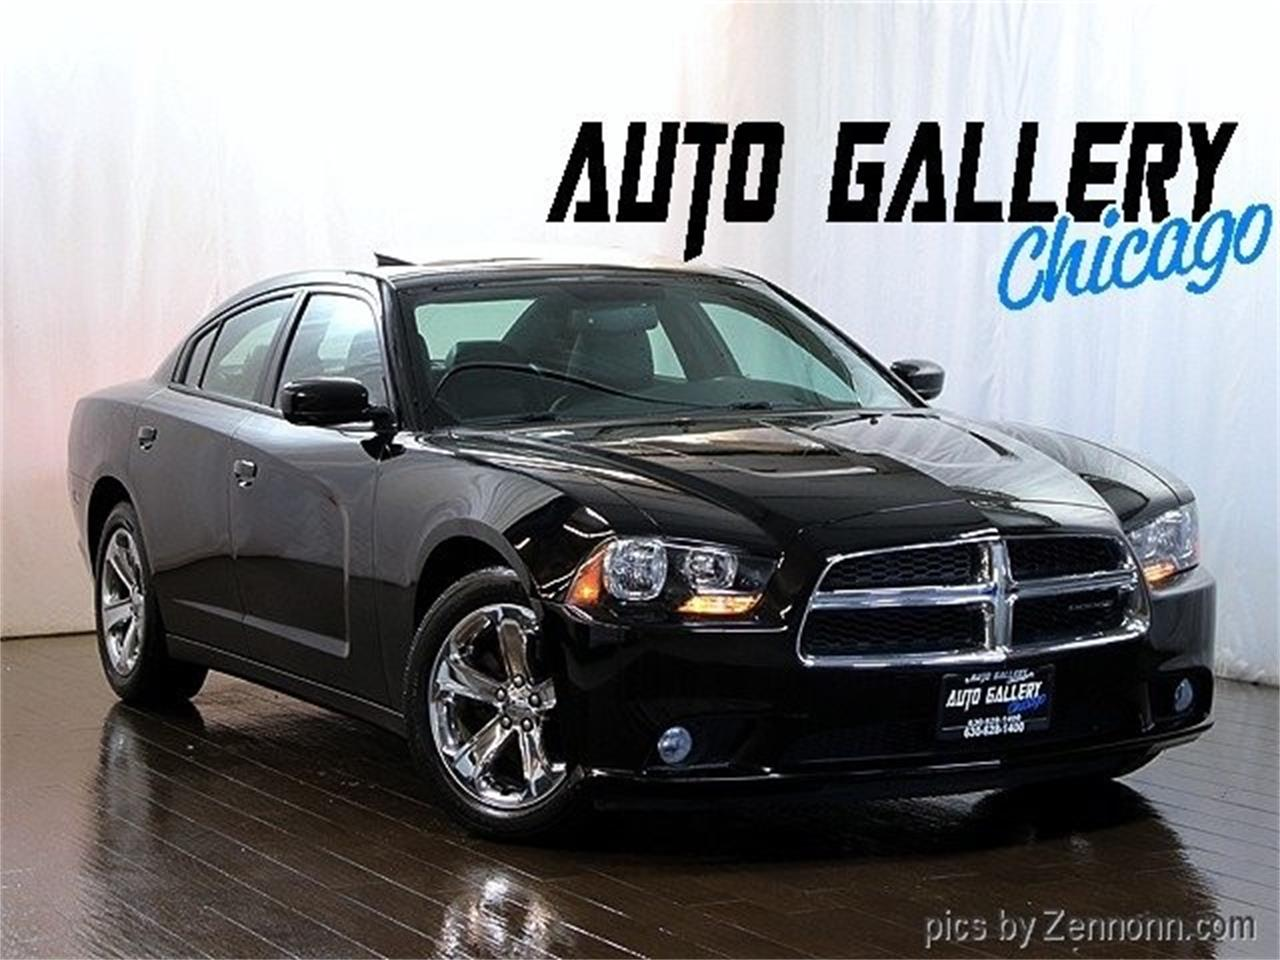 2012 Dodge Charger For Sale >> 2012 Dodge Charger For Sale Classiccars Com Cc 1076855